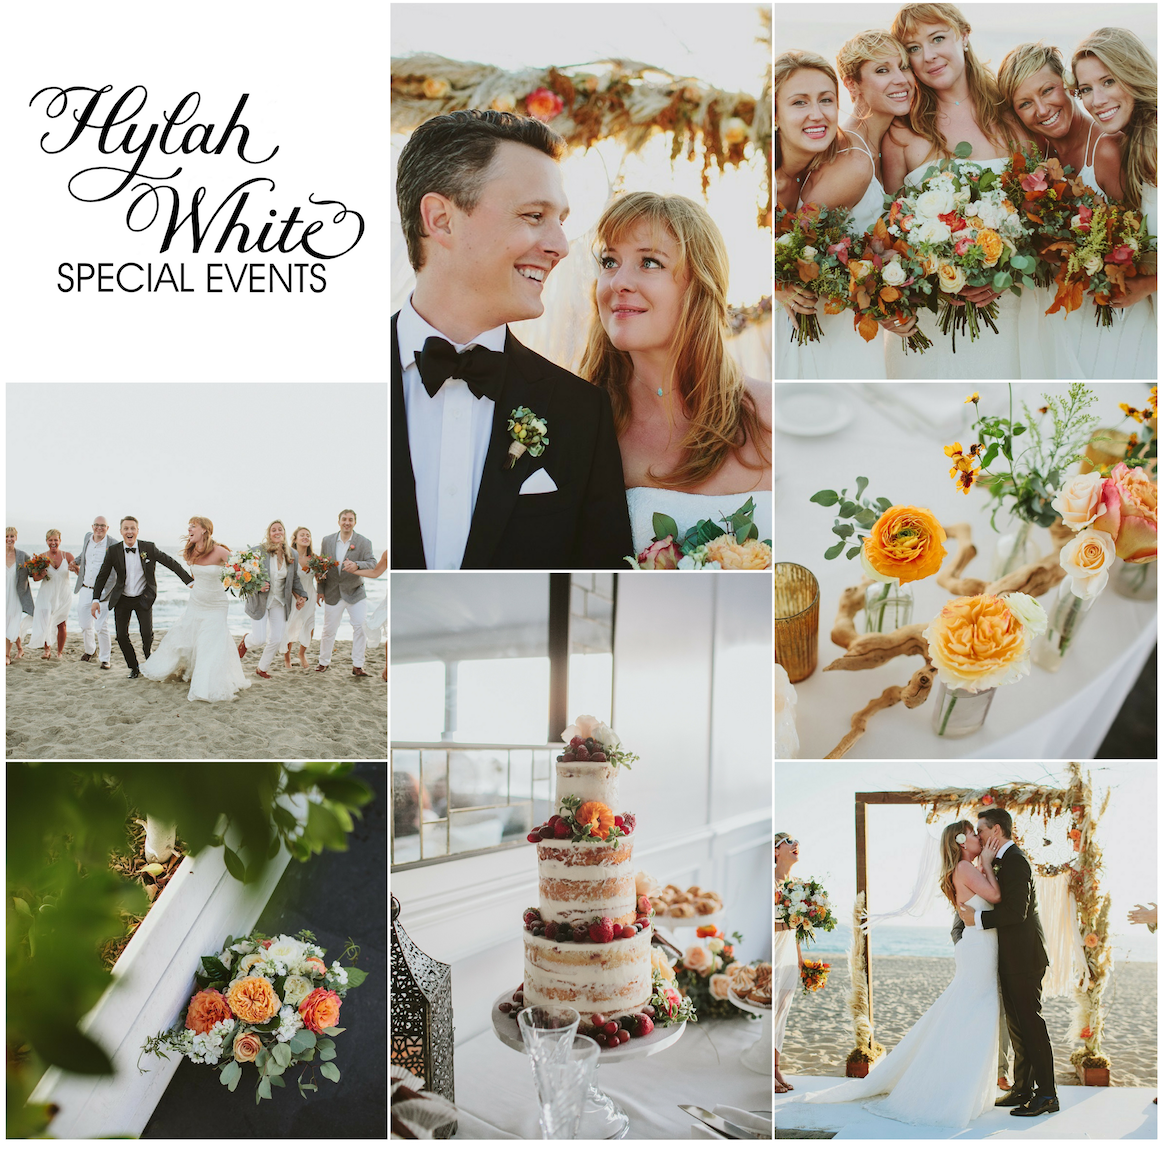 bohemian wedding, Hylah White